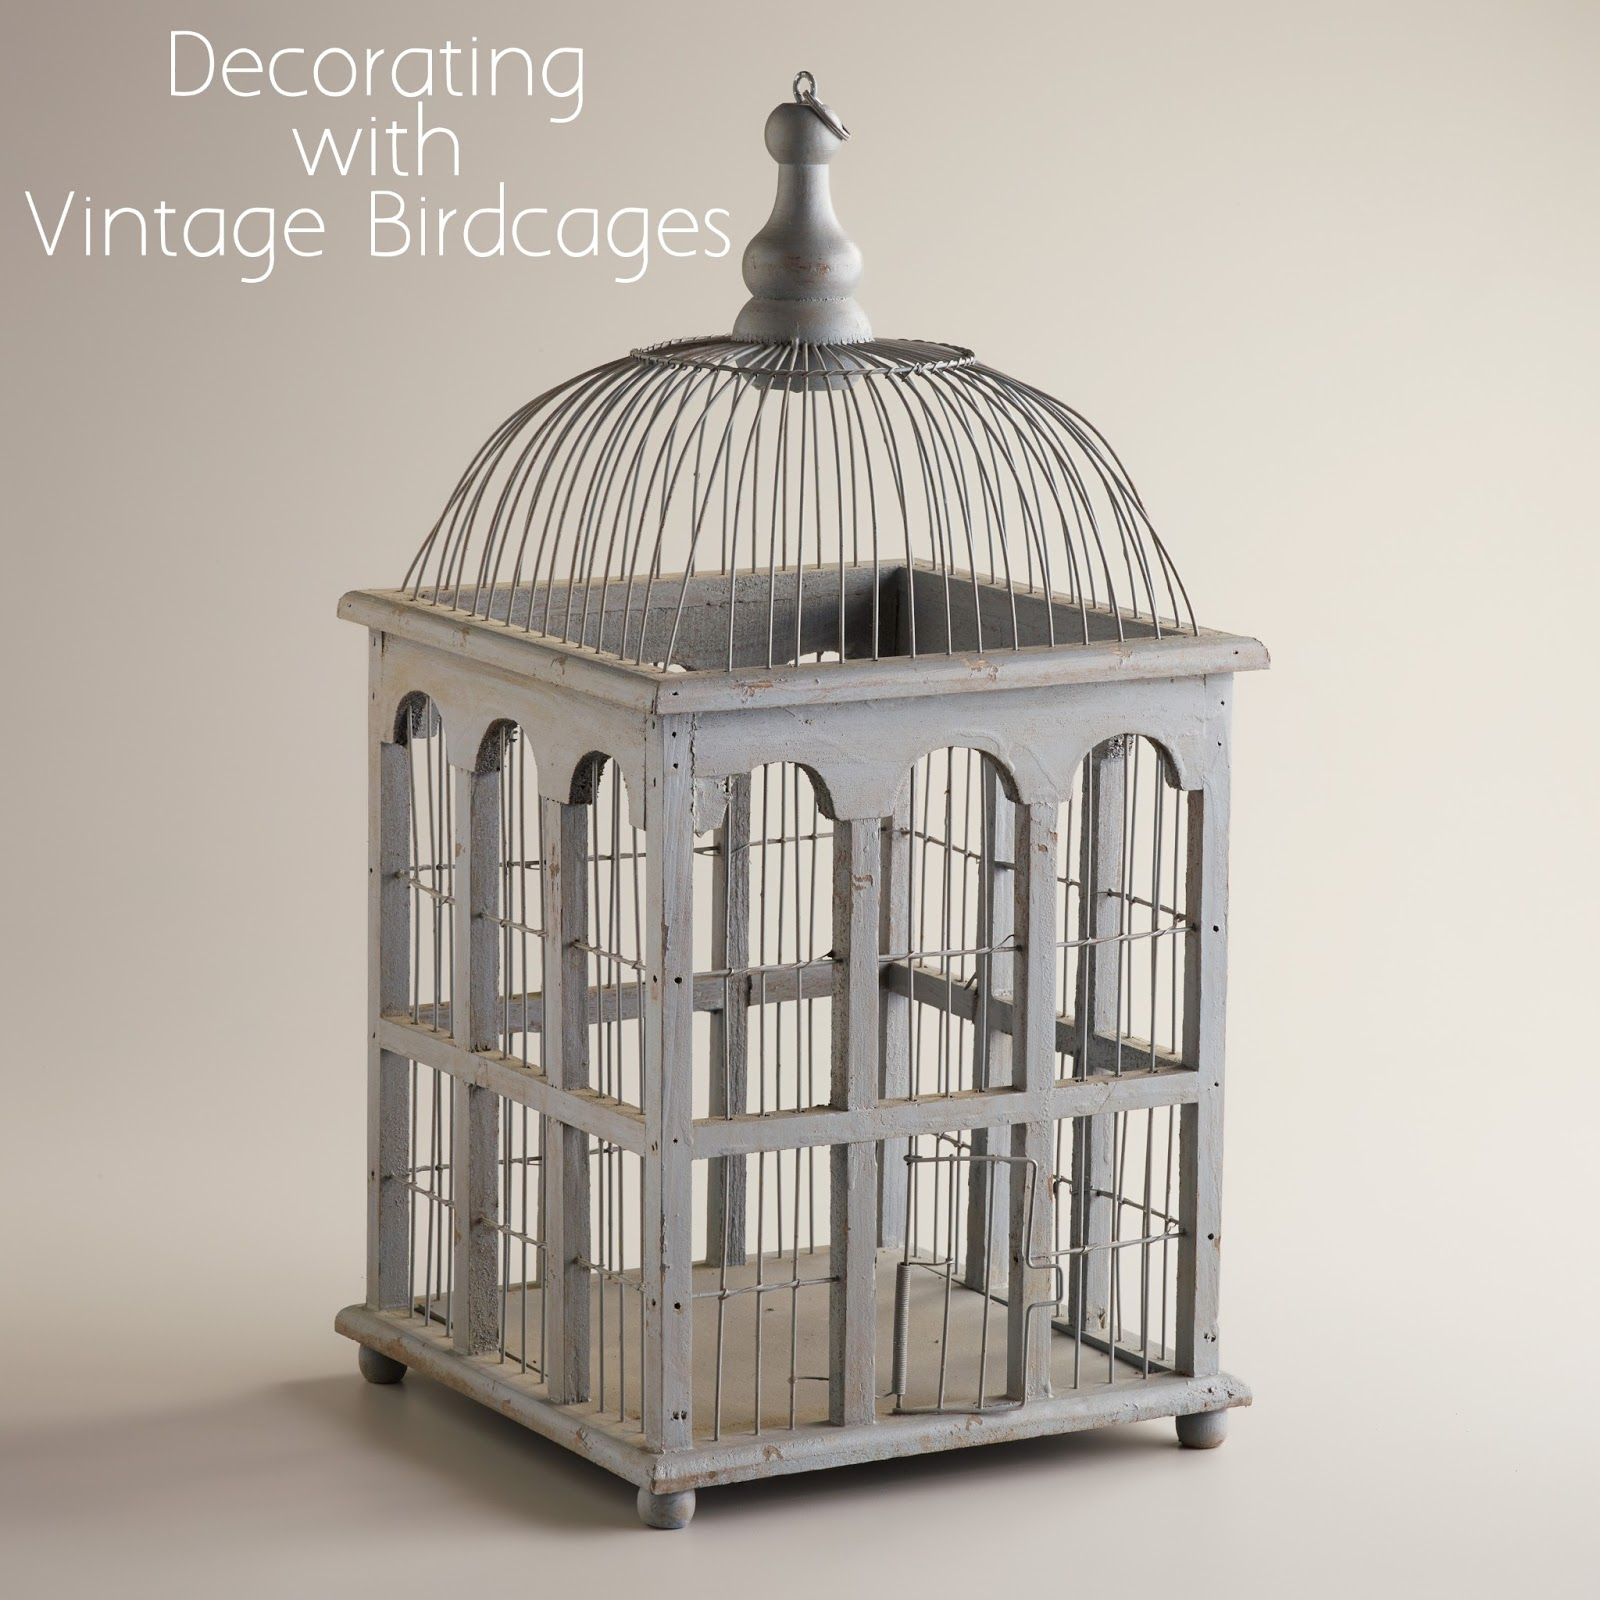 birdcages a hot decorative trend. Black Bedroom Furniture Sets. Home Design Ideas